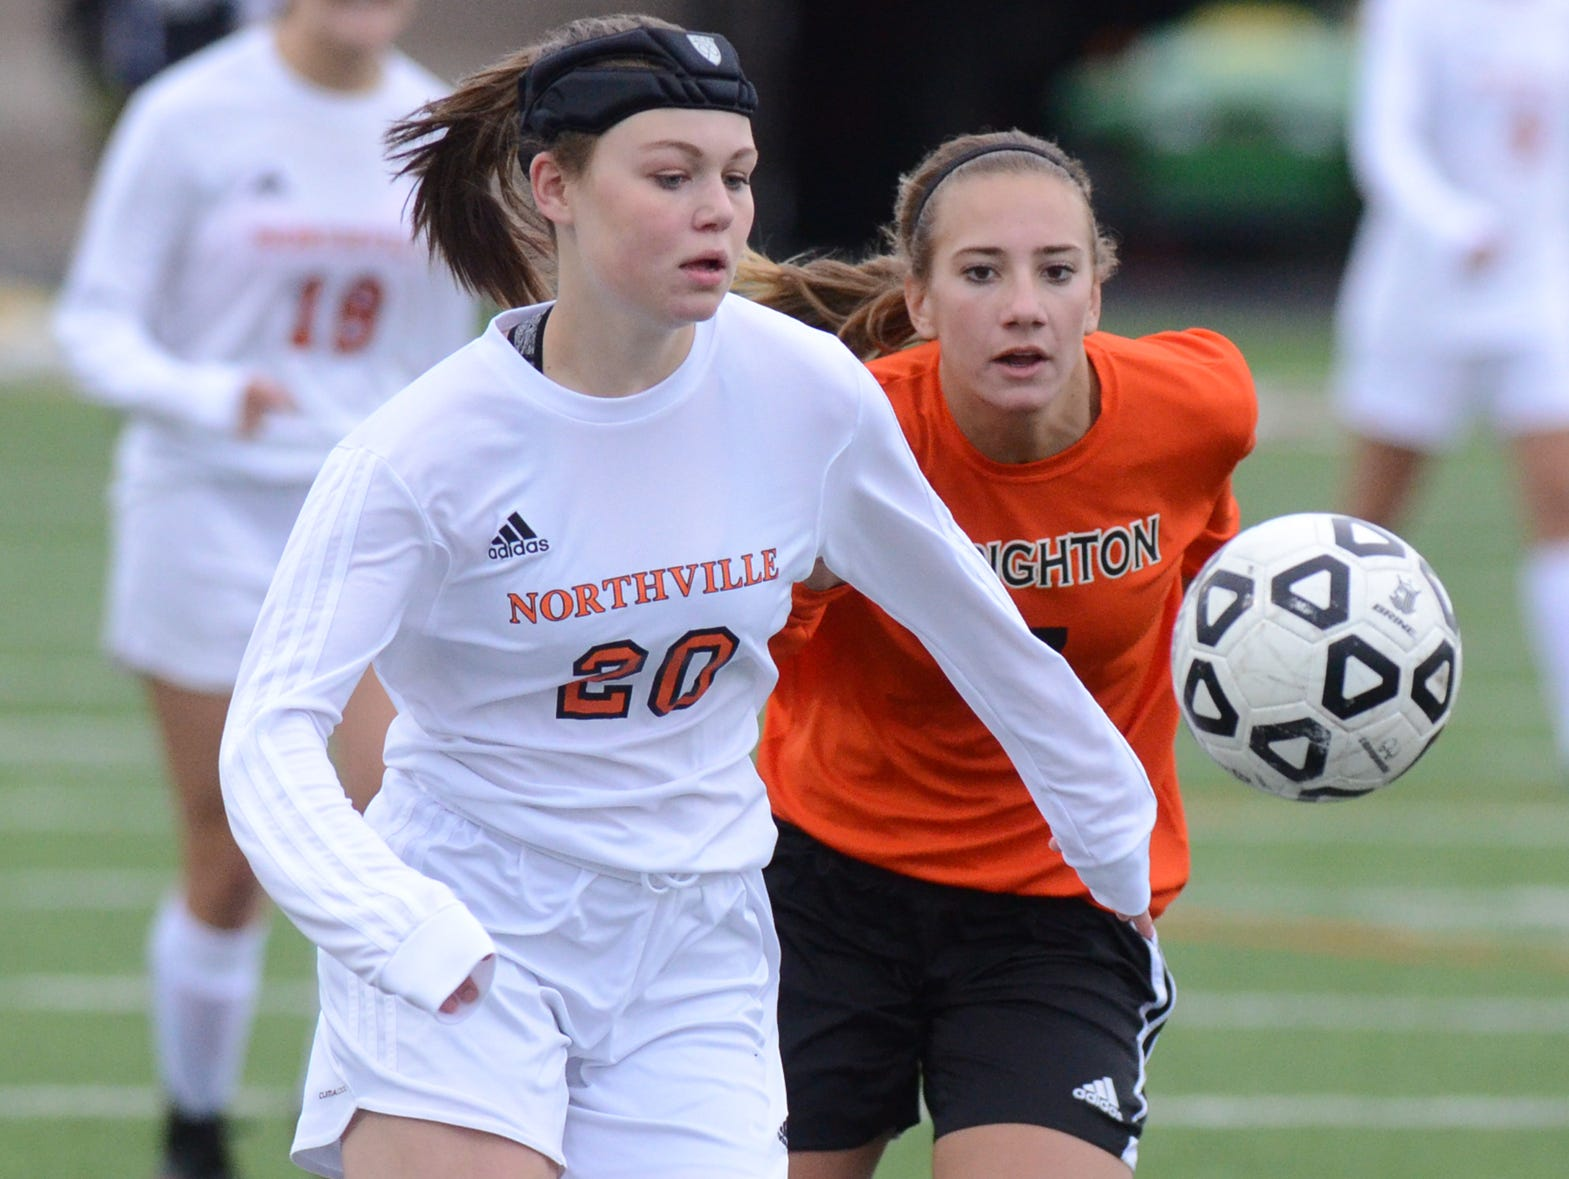 Northville's Nicole Skinner (left) cuts in front of a Brighton player to gain possession.